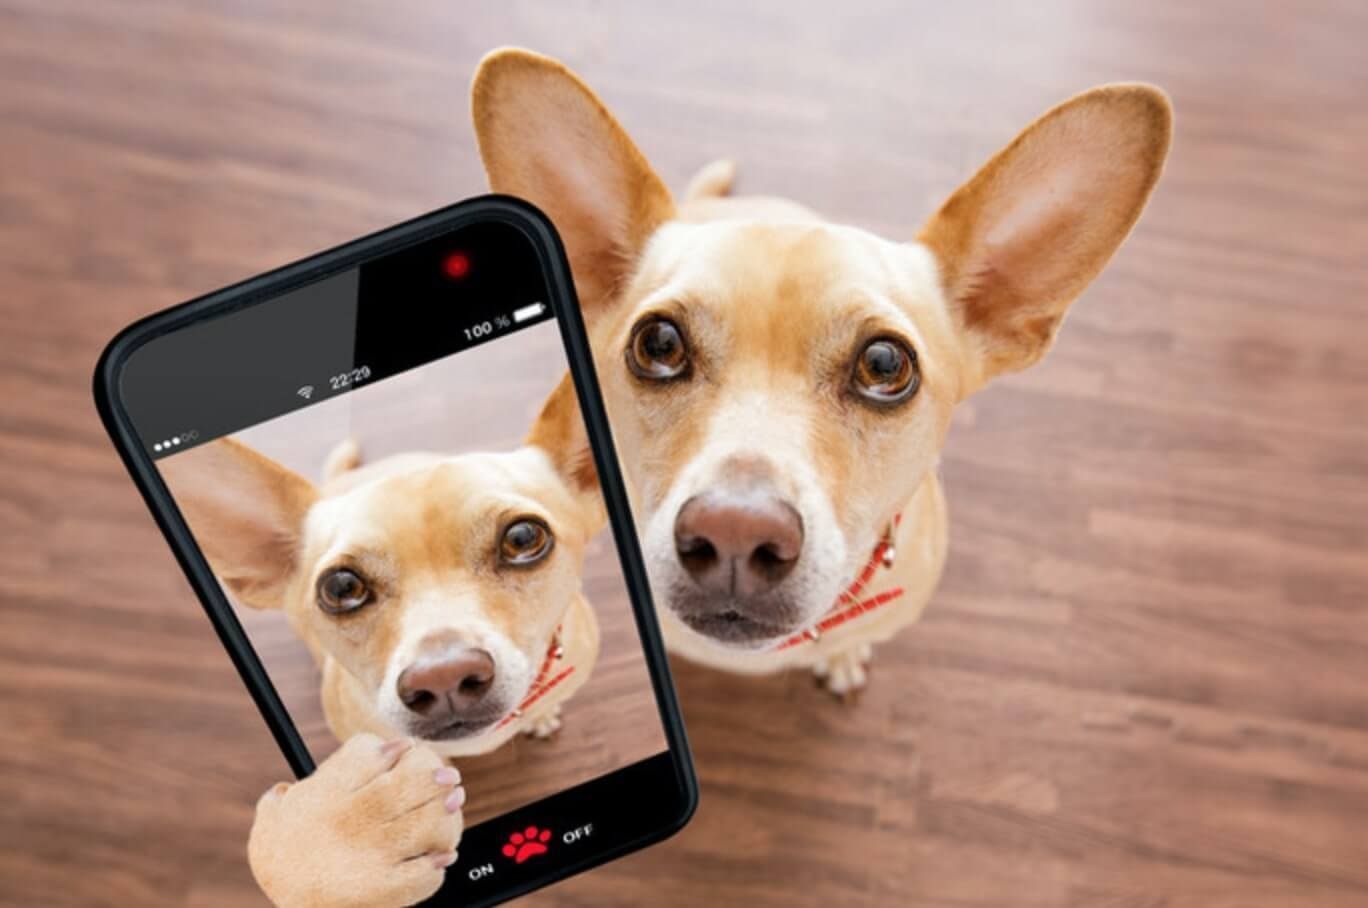 sweet dog shooting a selfie with an iphone